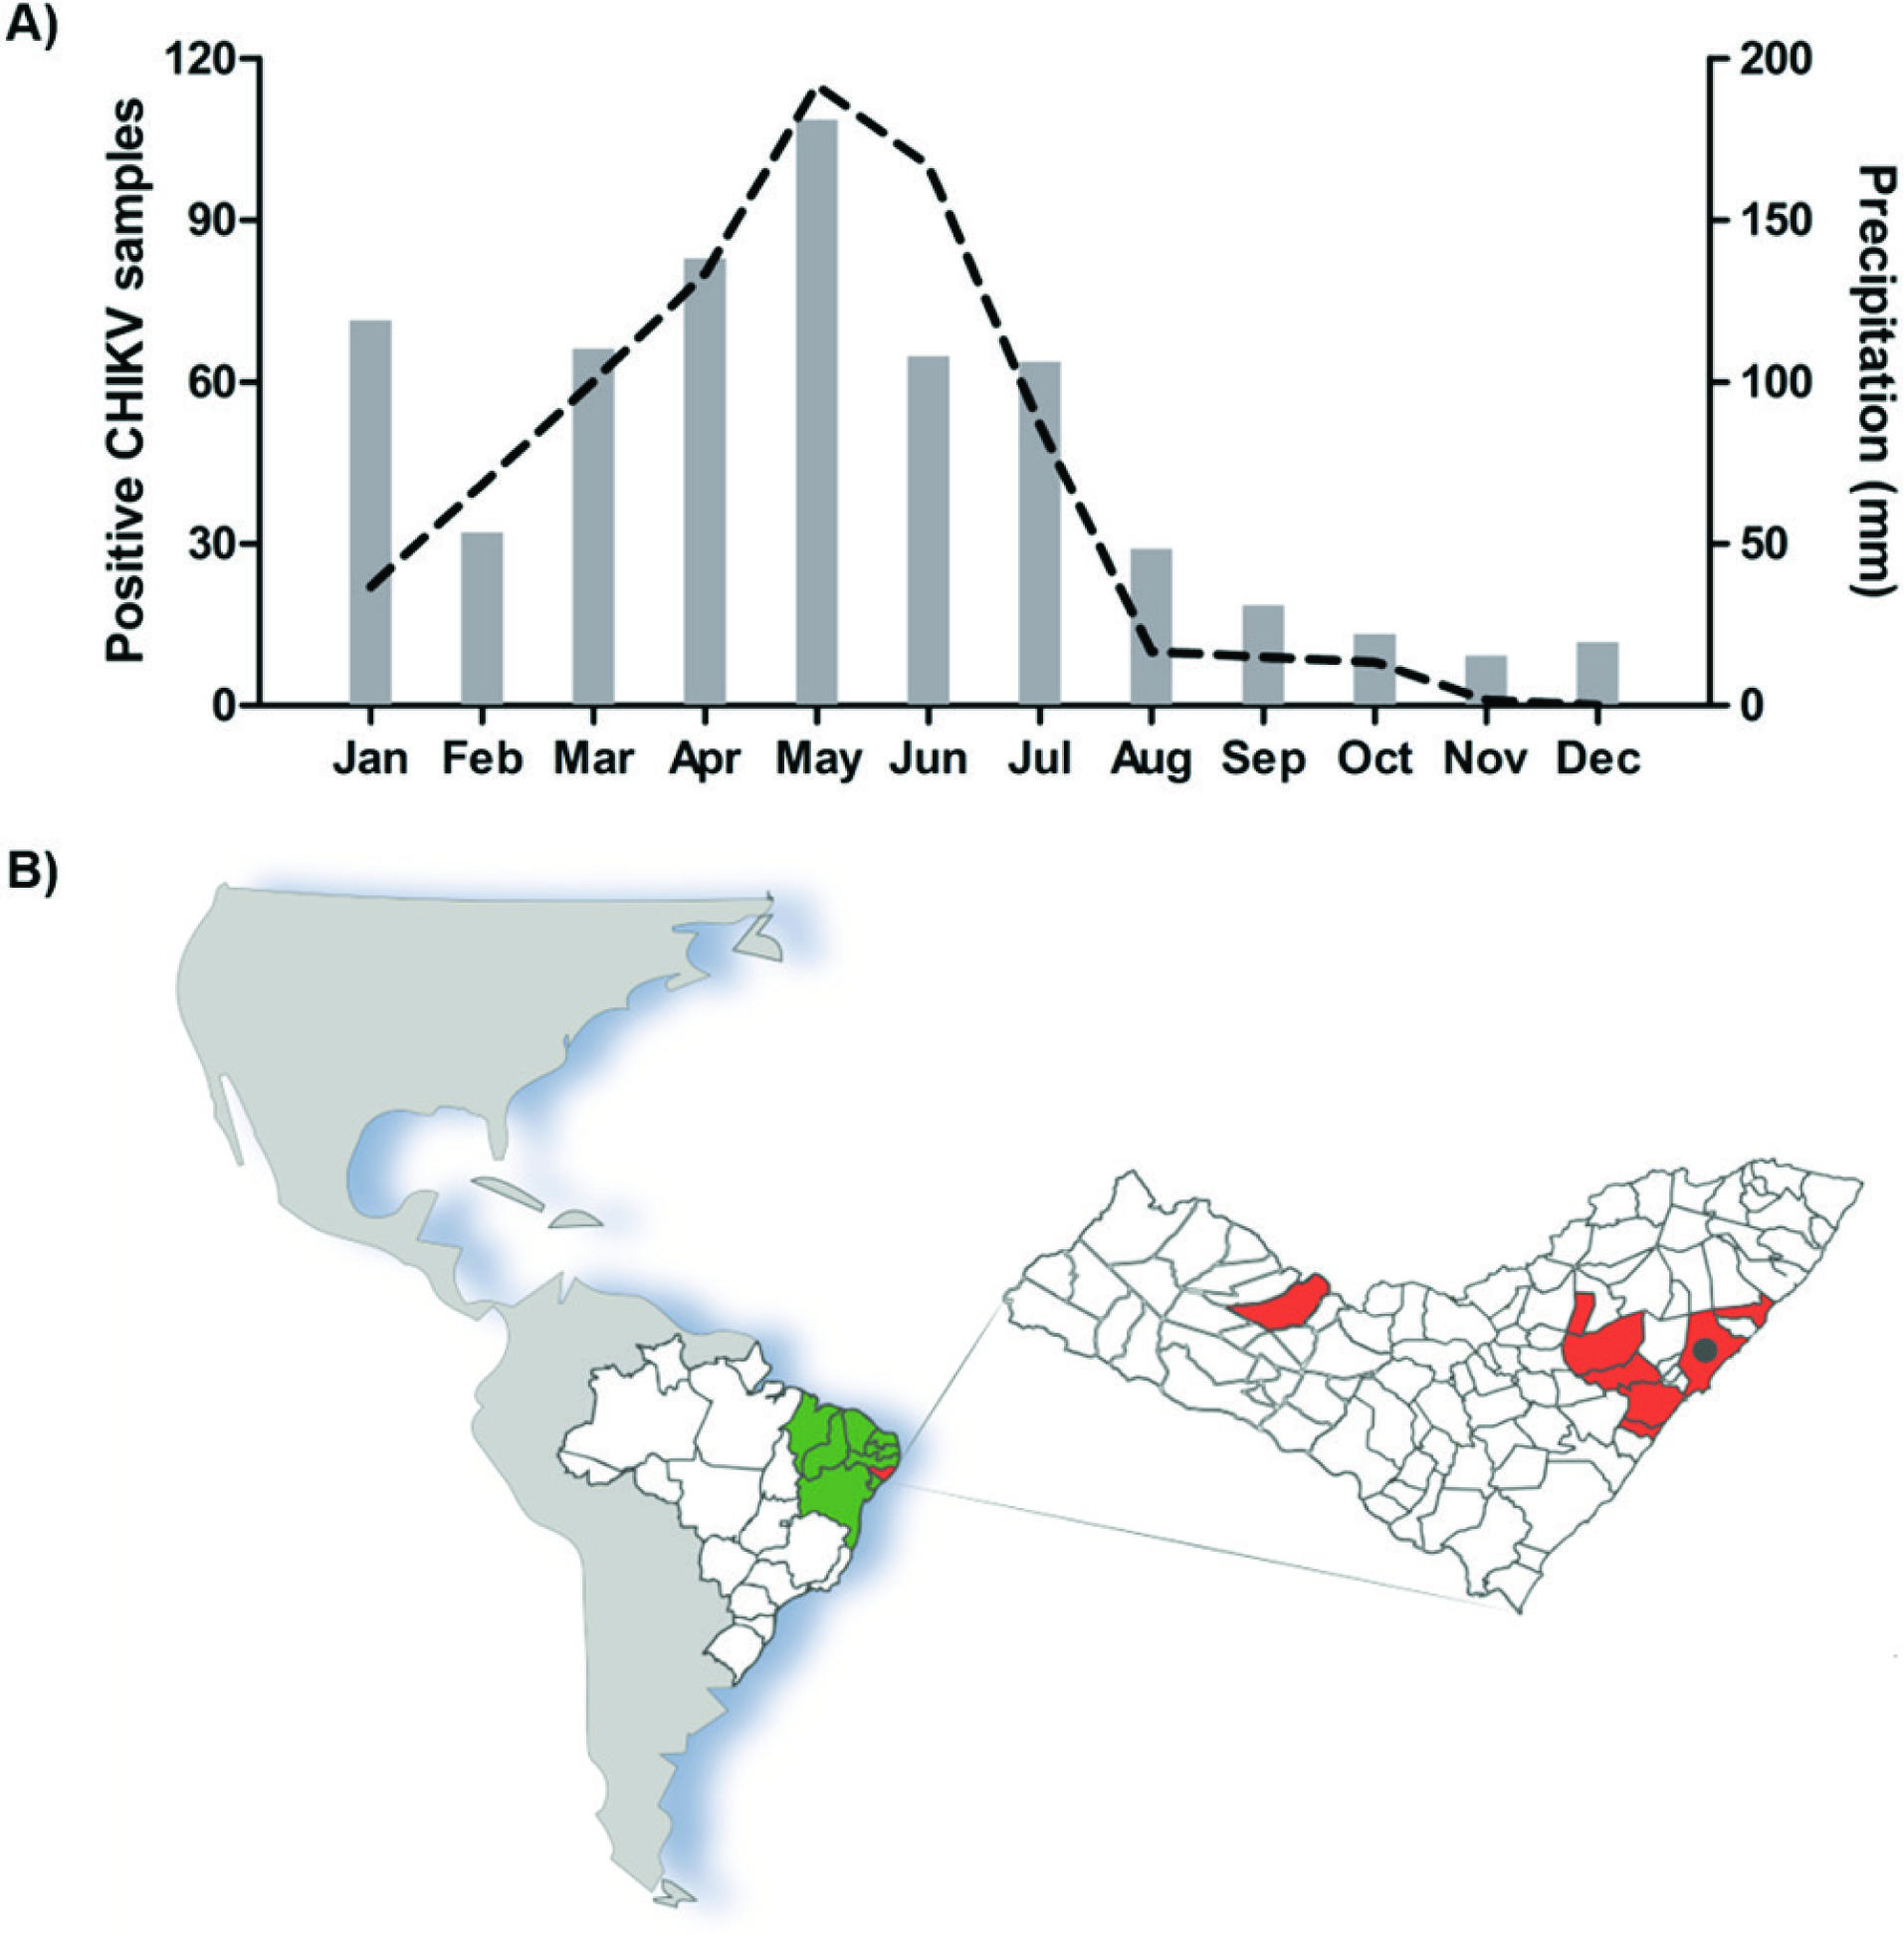 CHIKV positive samples during the 2016 outbreak in the Alagoas State. A) Number of CHIKV positive samples detected by qRT-PCR at the LACEN/AL (left axis) and rainfall precipitation of Alagoas State (right axis) from January to December 2016; B) Alagoas State map located in the northeast of Brazil, showing cities with positive CHIKV samples used in the genotype identification (n=11) colored in red. The capital city Maceio is represented by the black dot